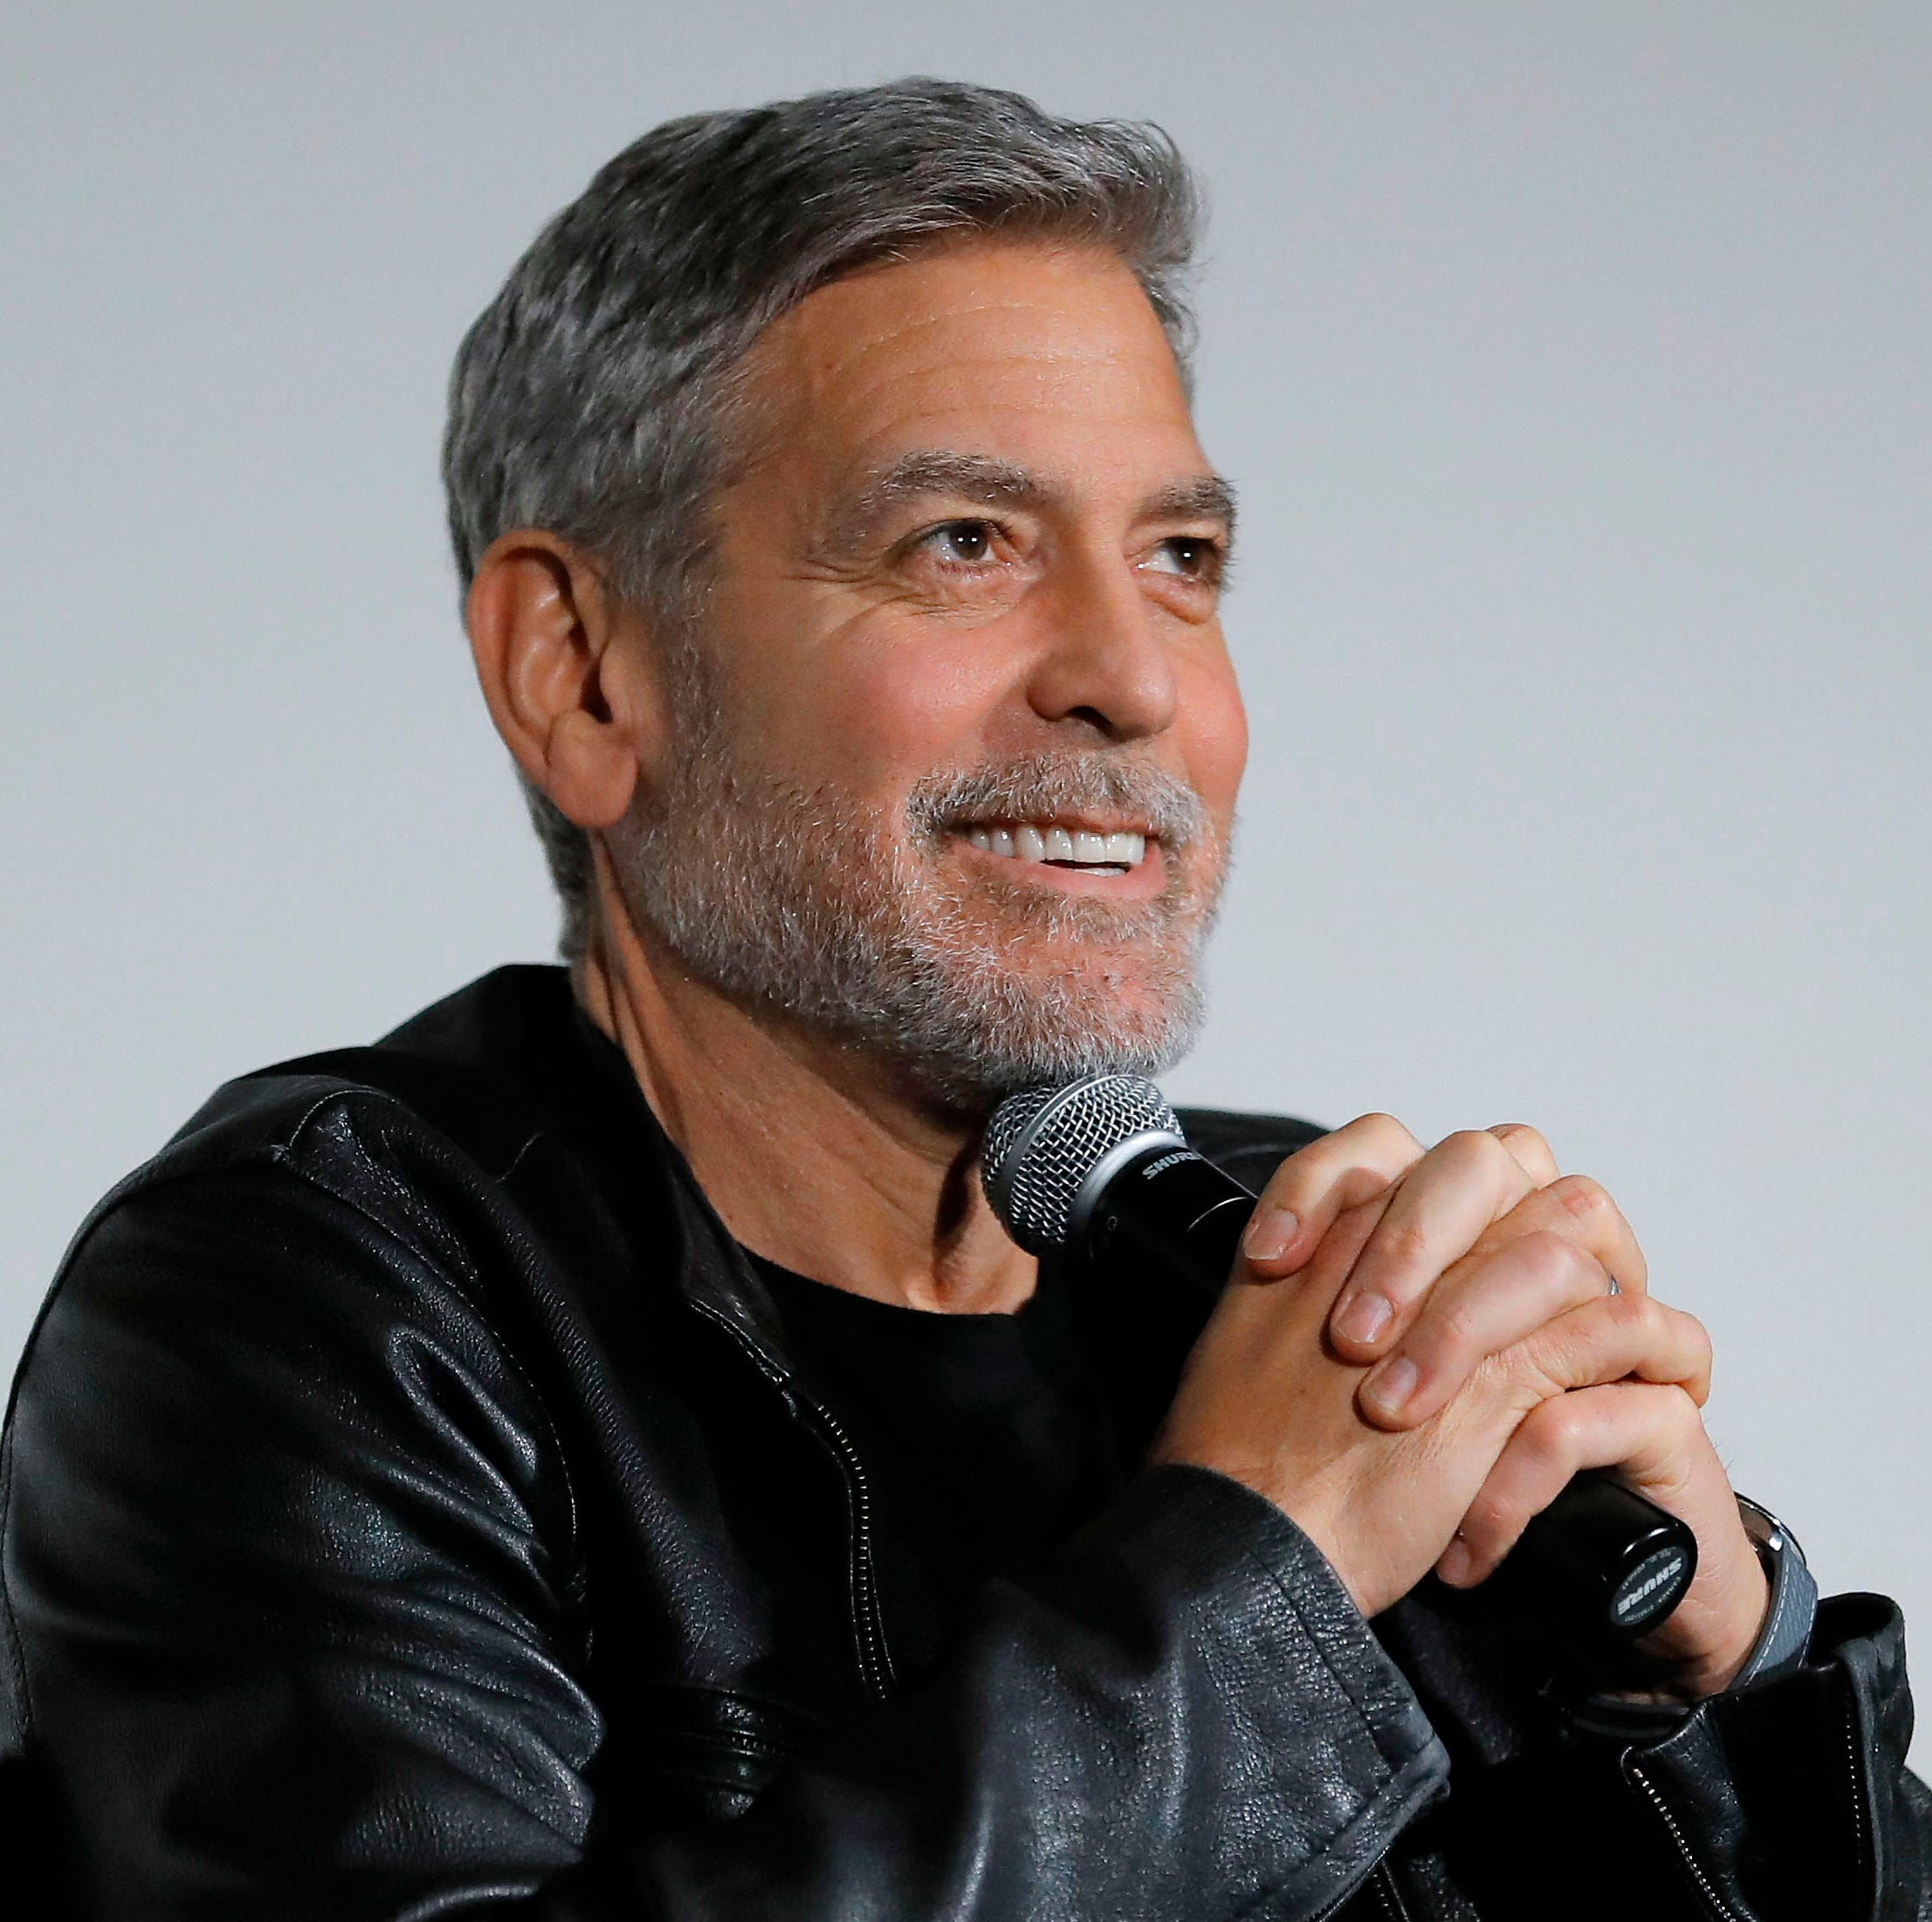 """George Clooney speaks onstage during Hulu's """"Catch-22"""" New York Special Screening at DGA Theatre on May 01, 2019 in New York City."""